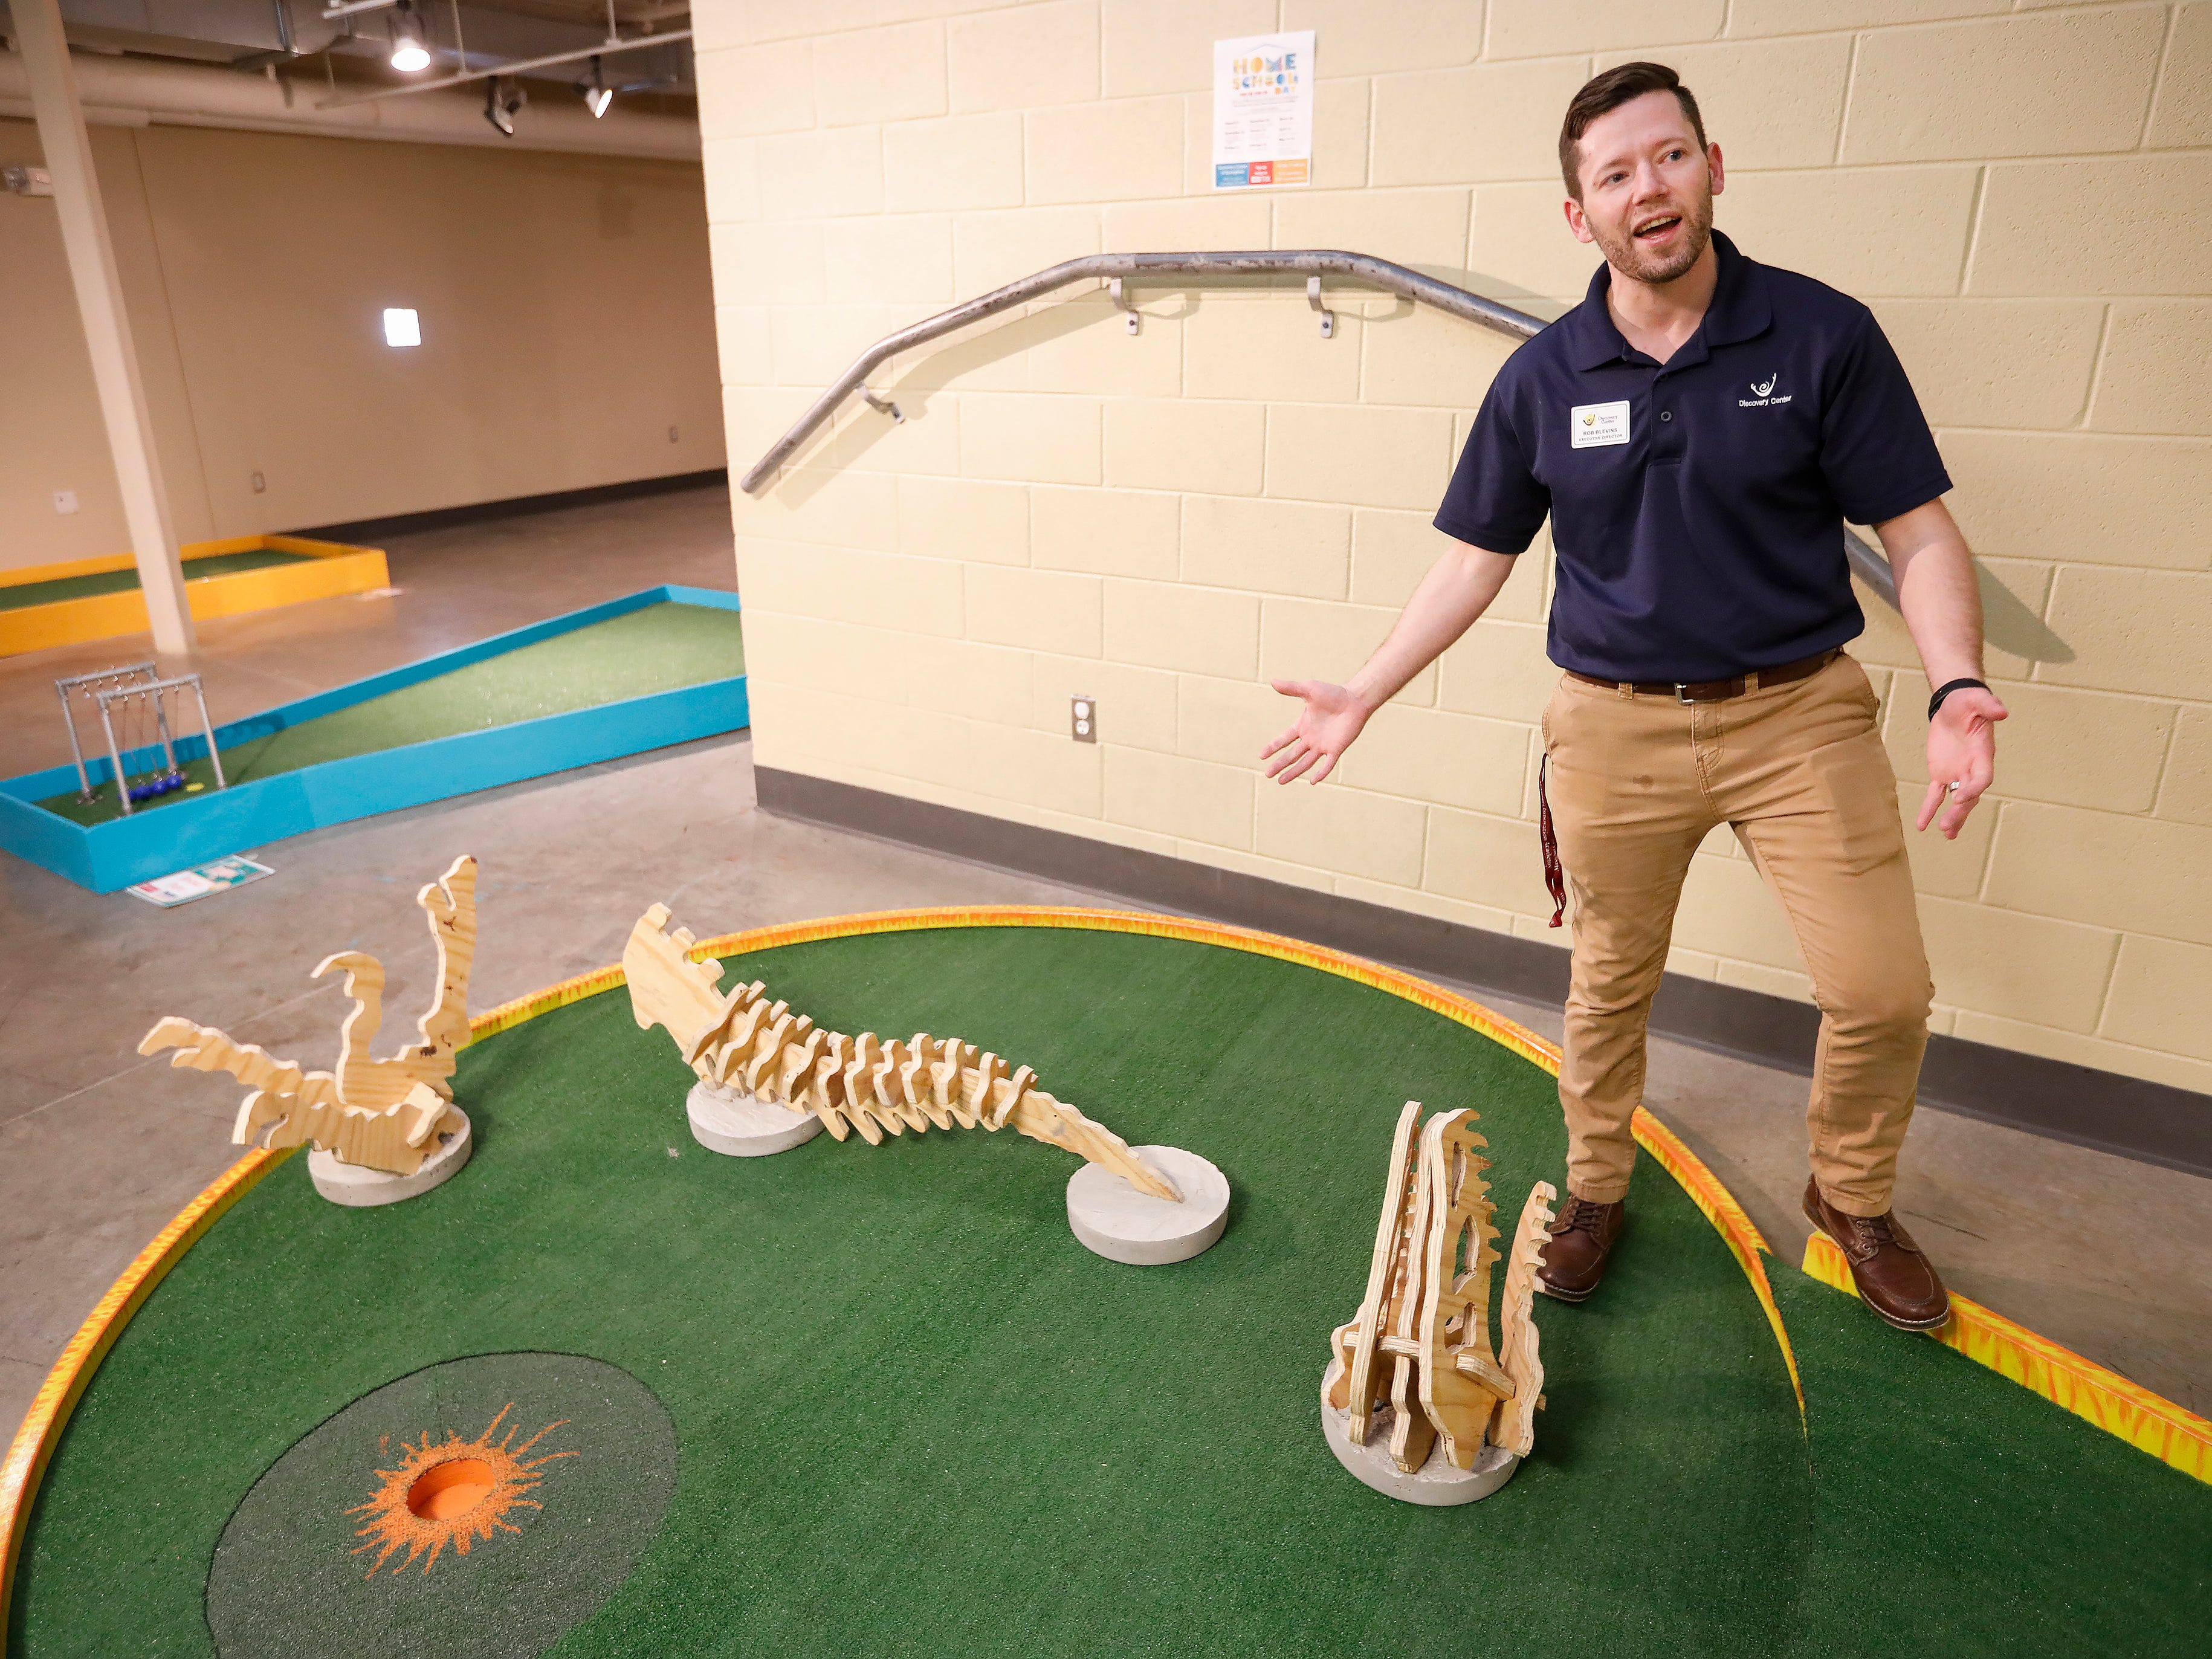 Rob Blevins, executive director at the Discovery Center, talks about the new 9-hole indoor miniature golf course at the science museum. The new exhibit opens to the public on Sunday, March 31, 2019.